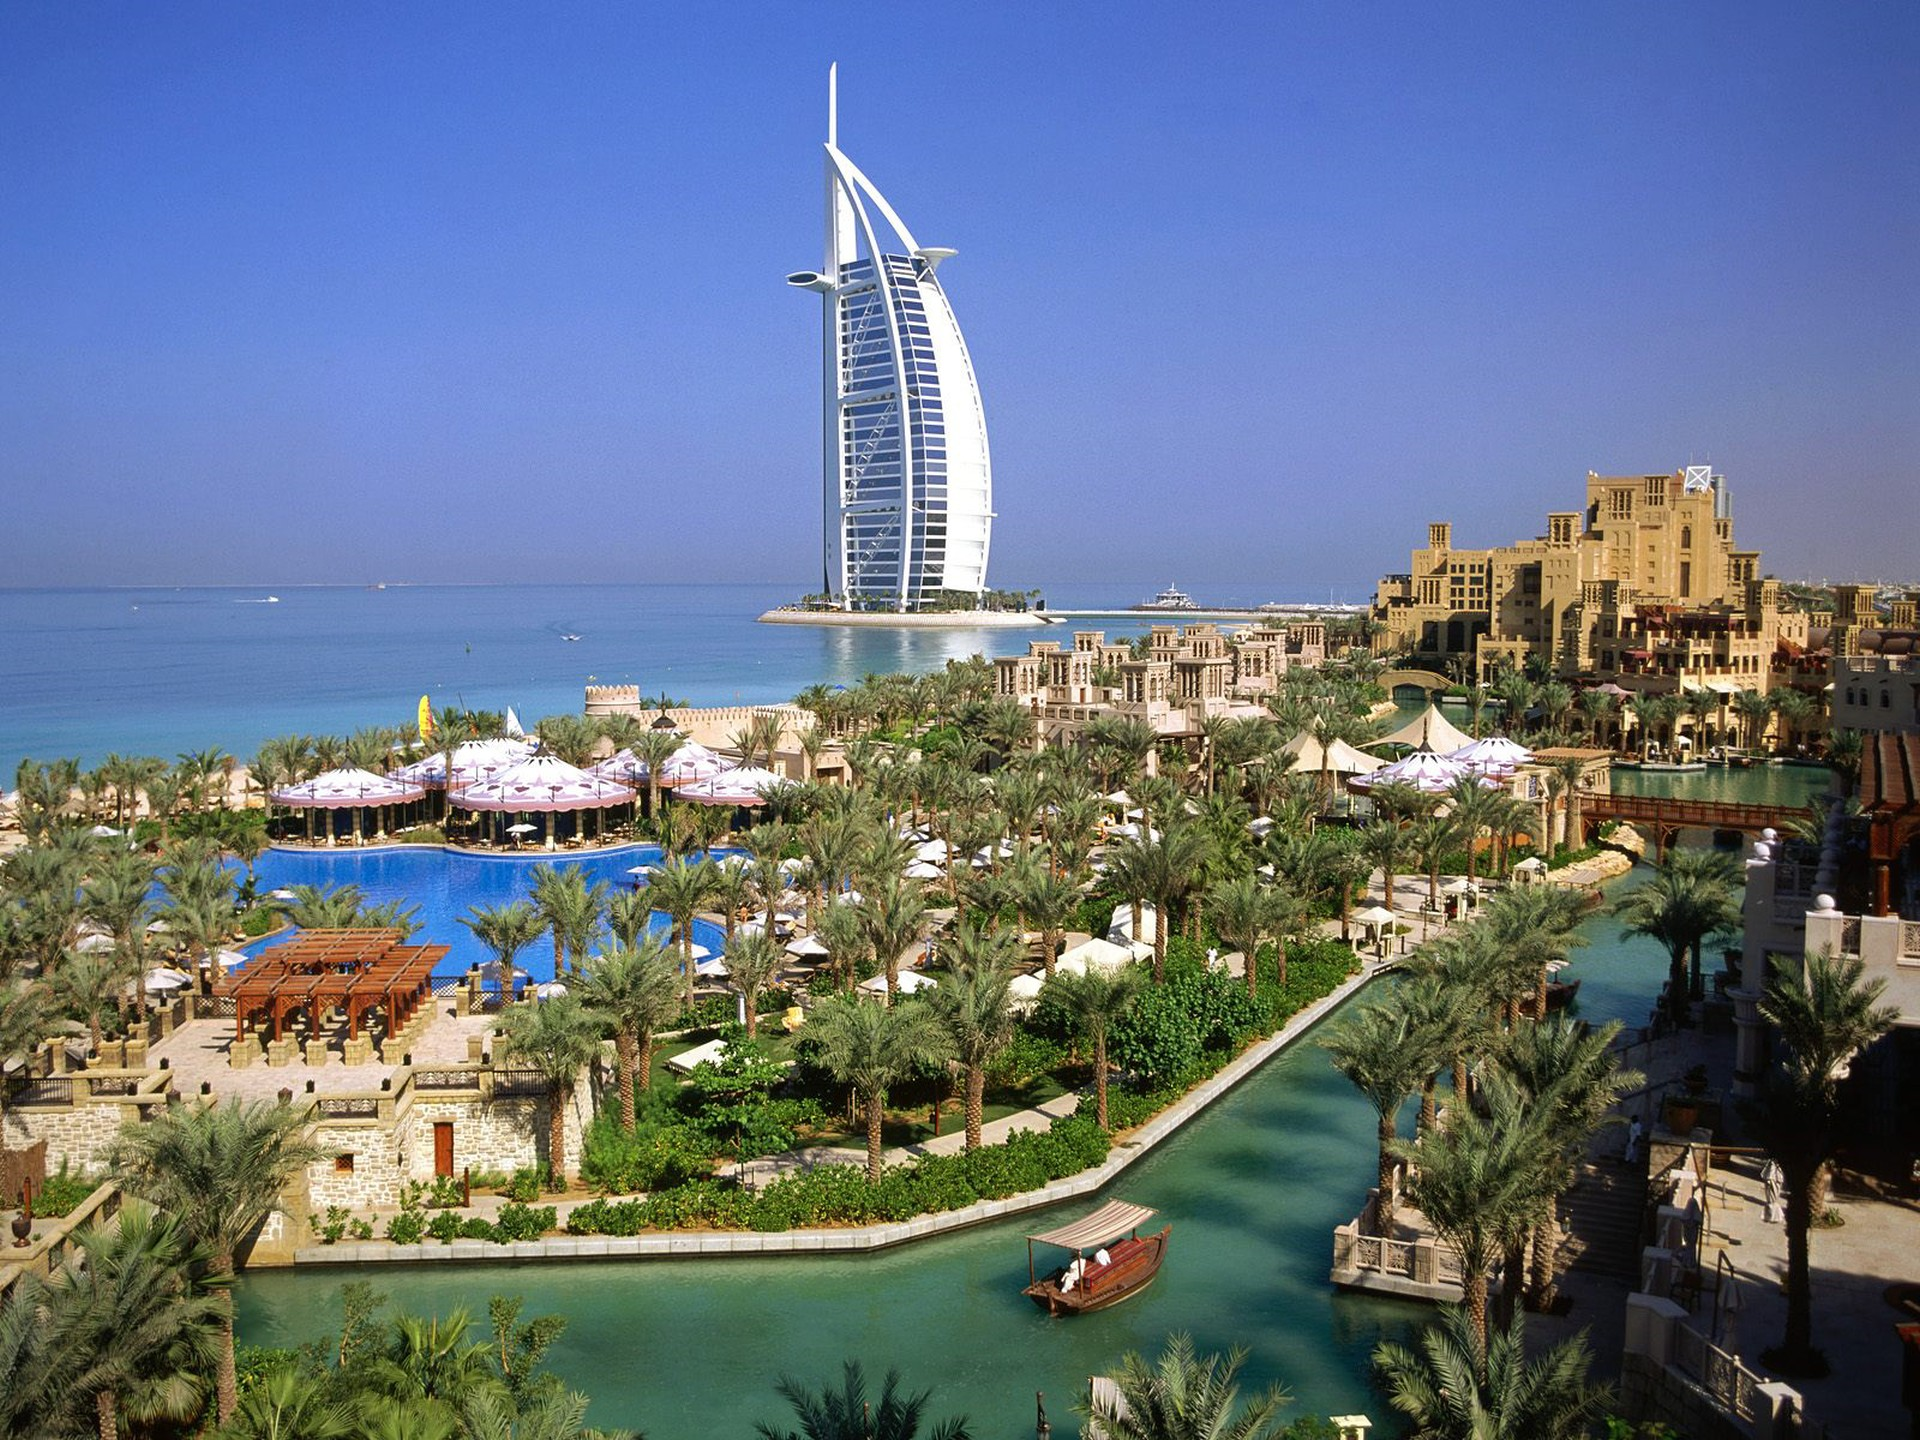 Hotels in the UAE for families with children: tips for tourists